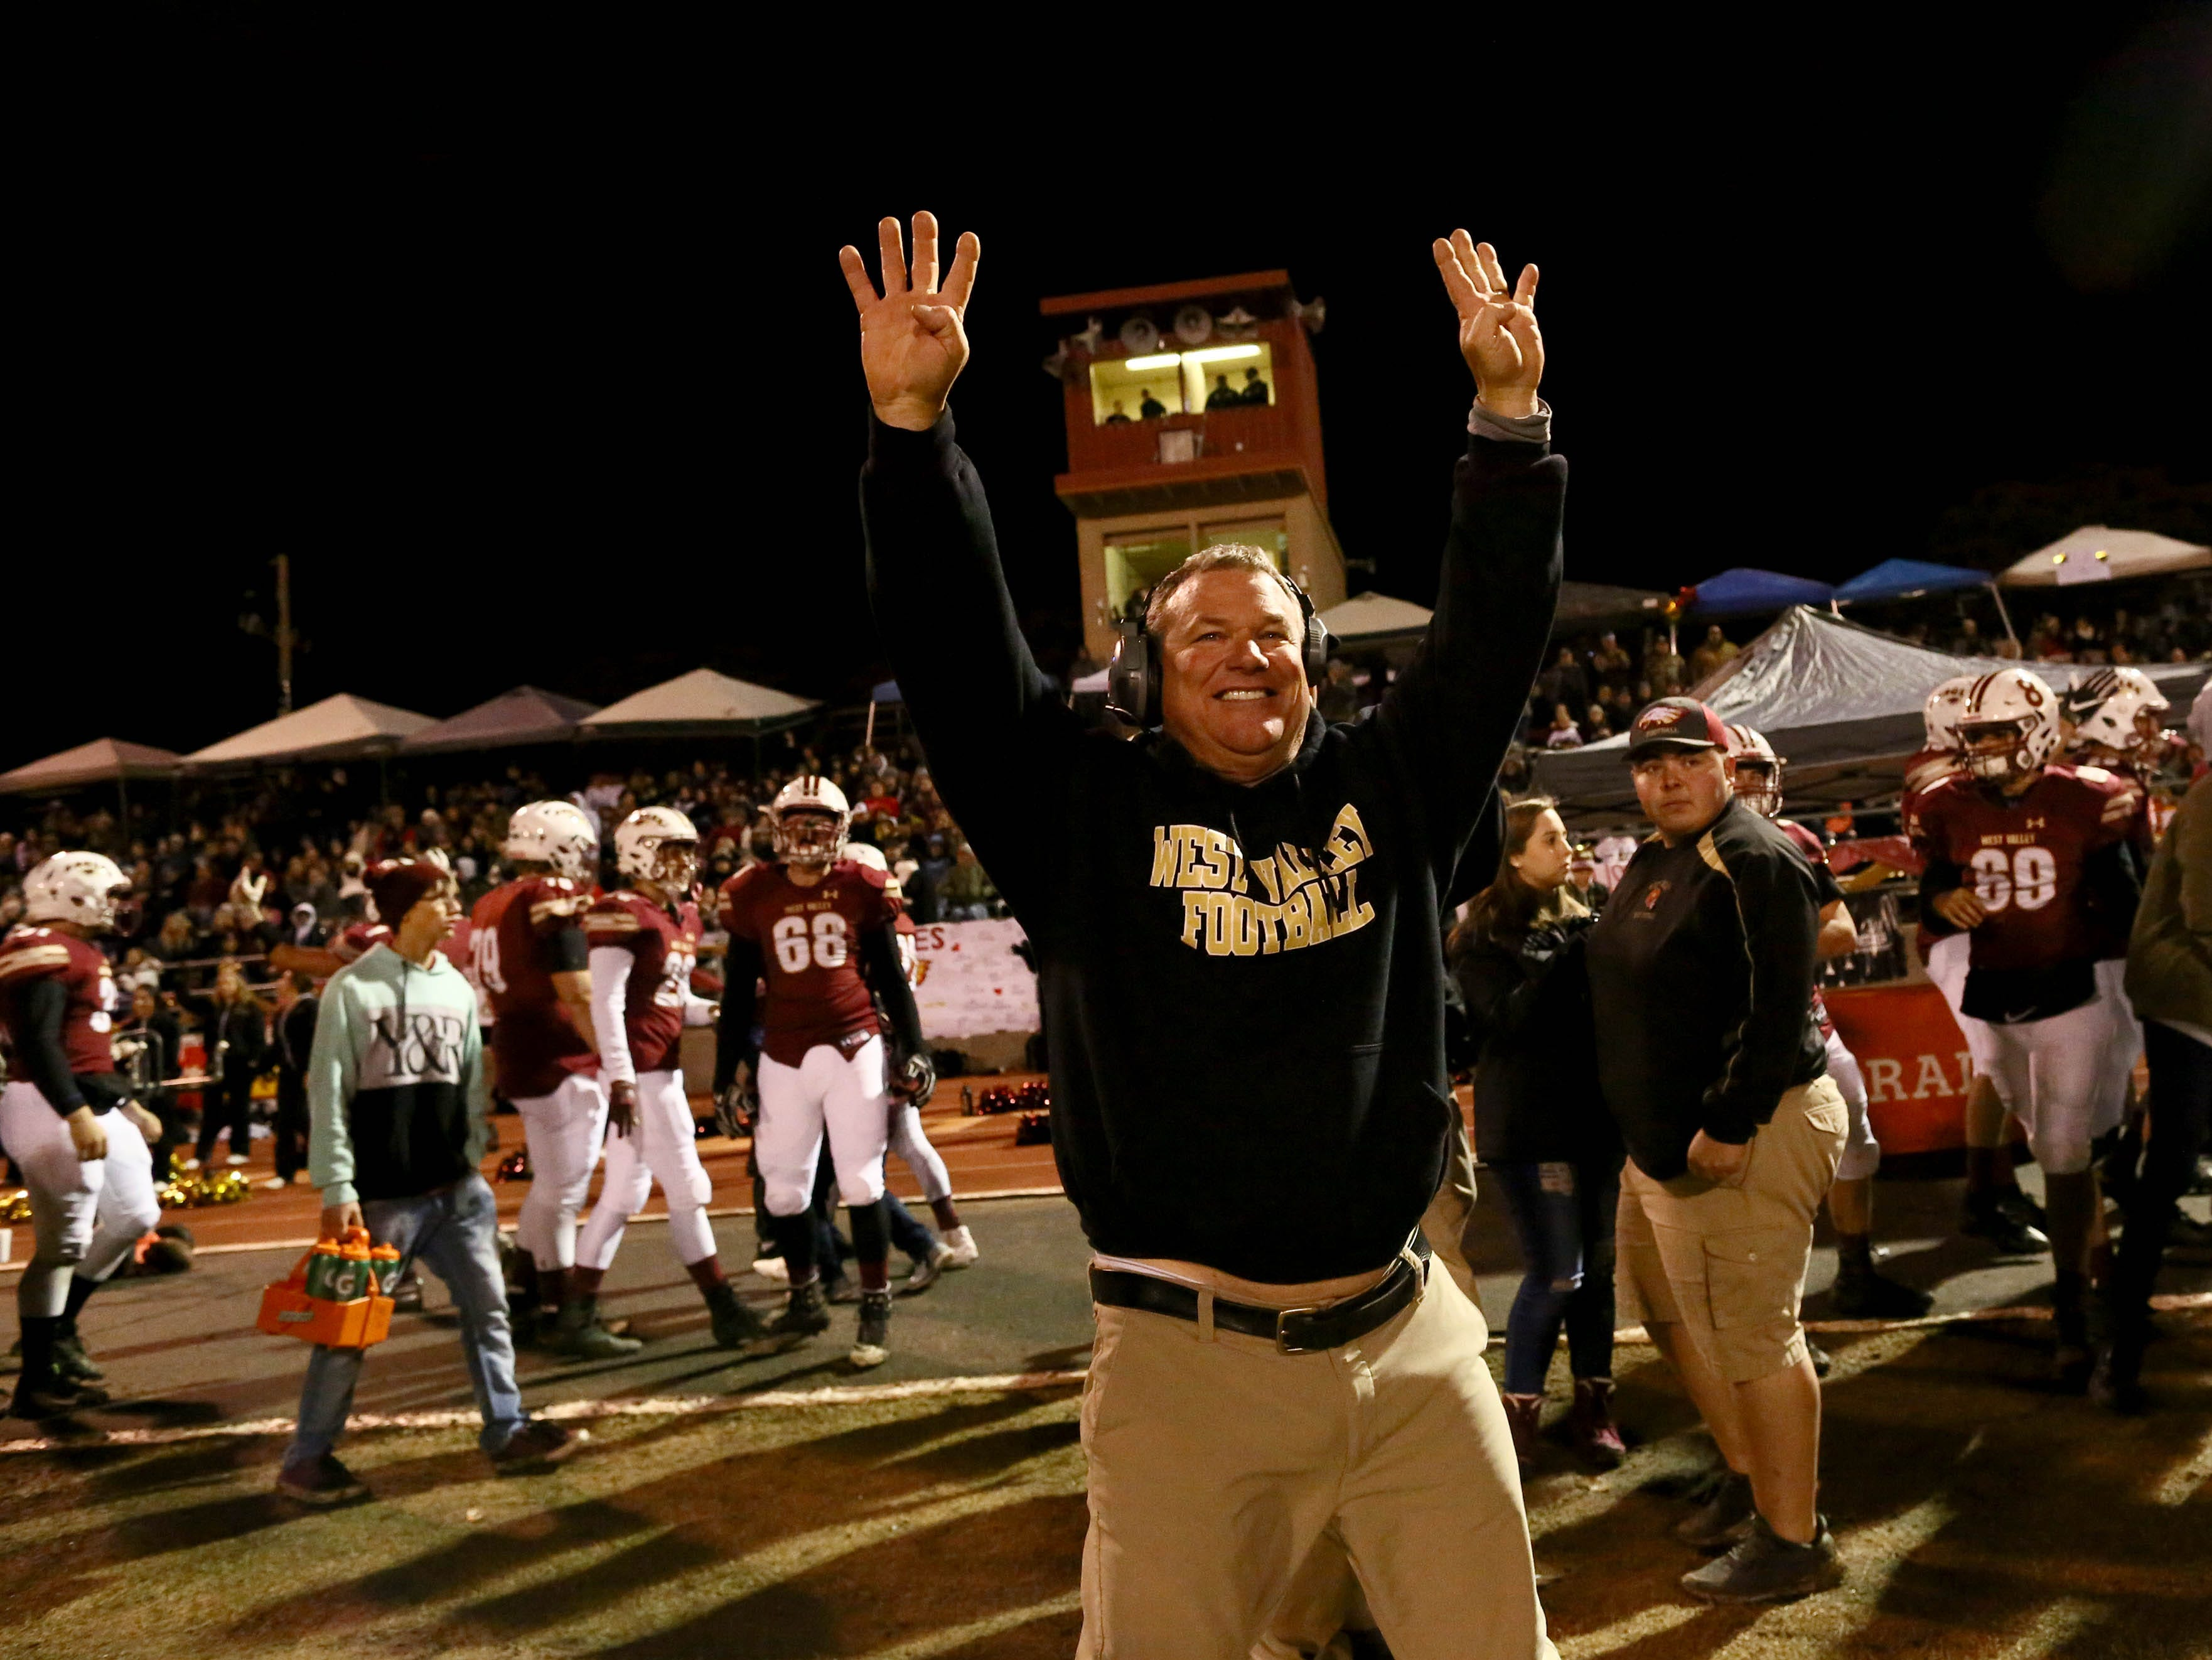 West Valley head coach Greg Grandell holds up eight fingers in honor of Tyson Wacker as the Eagles beat the Sutter Huskies, 7-0 , to take the Division III Northern Section championship in Cottonwood on Saturday, Dec. 1.